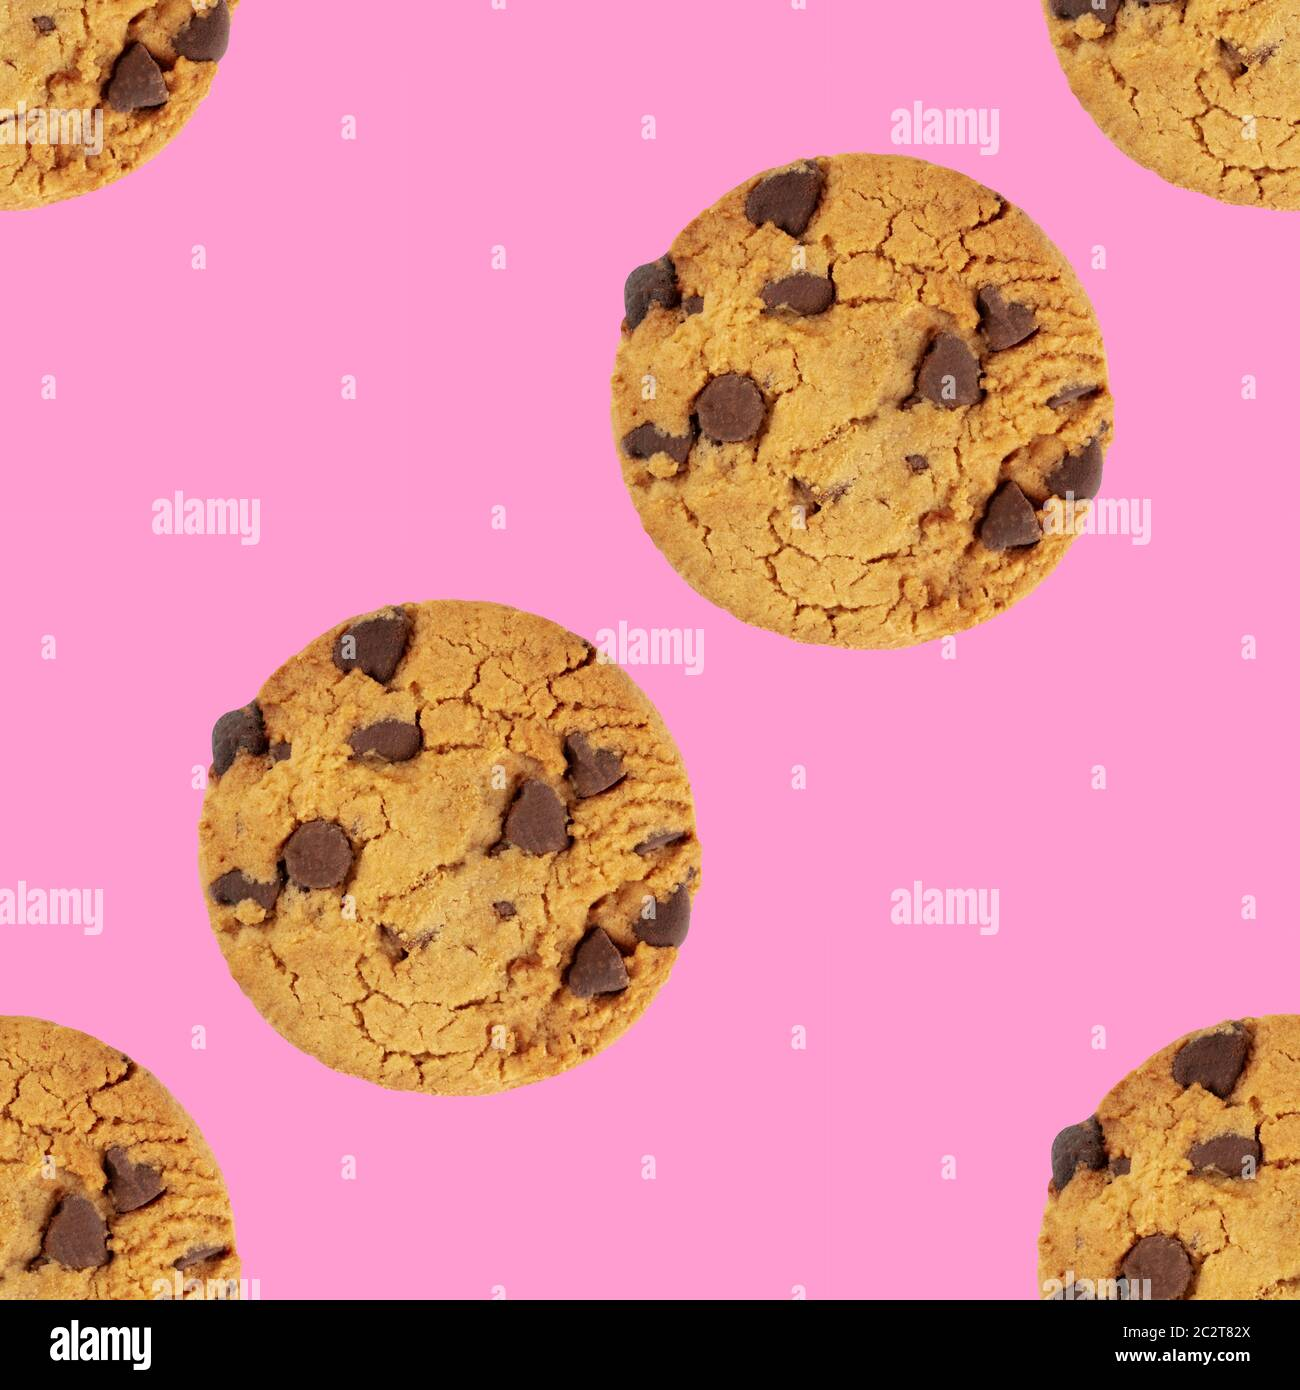 Chocolate chip cookies, gluten free, a seamless repeat pattern on a vibrant pink background Stock Photo